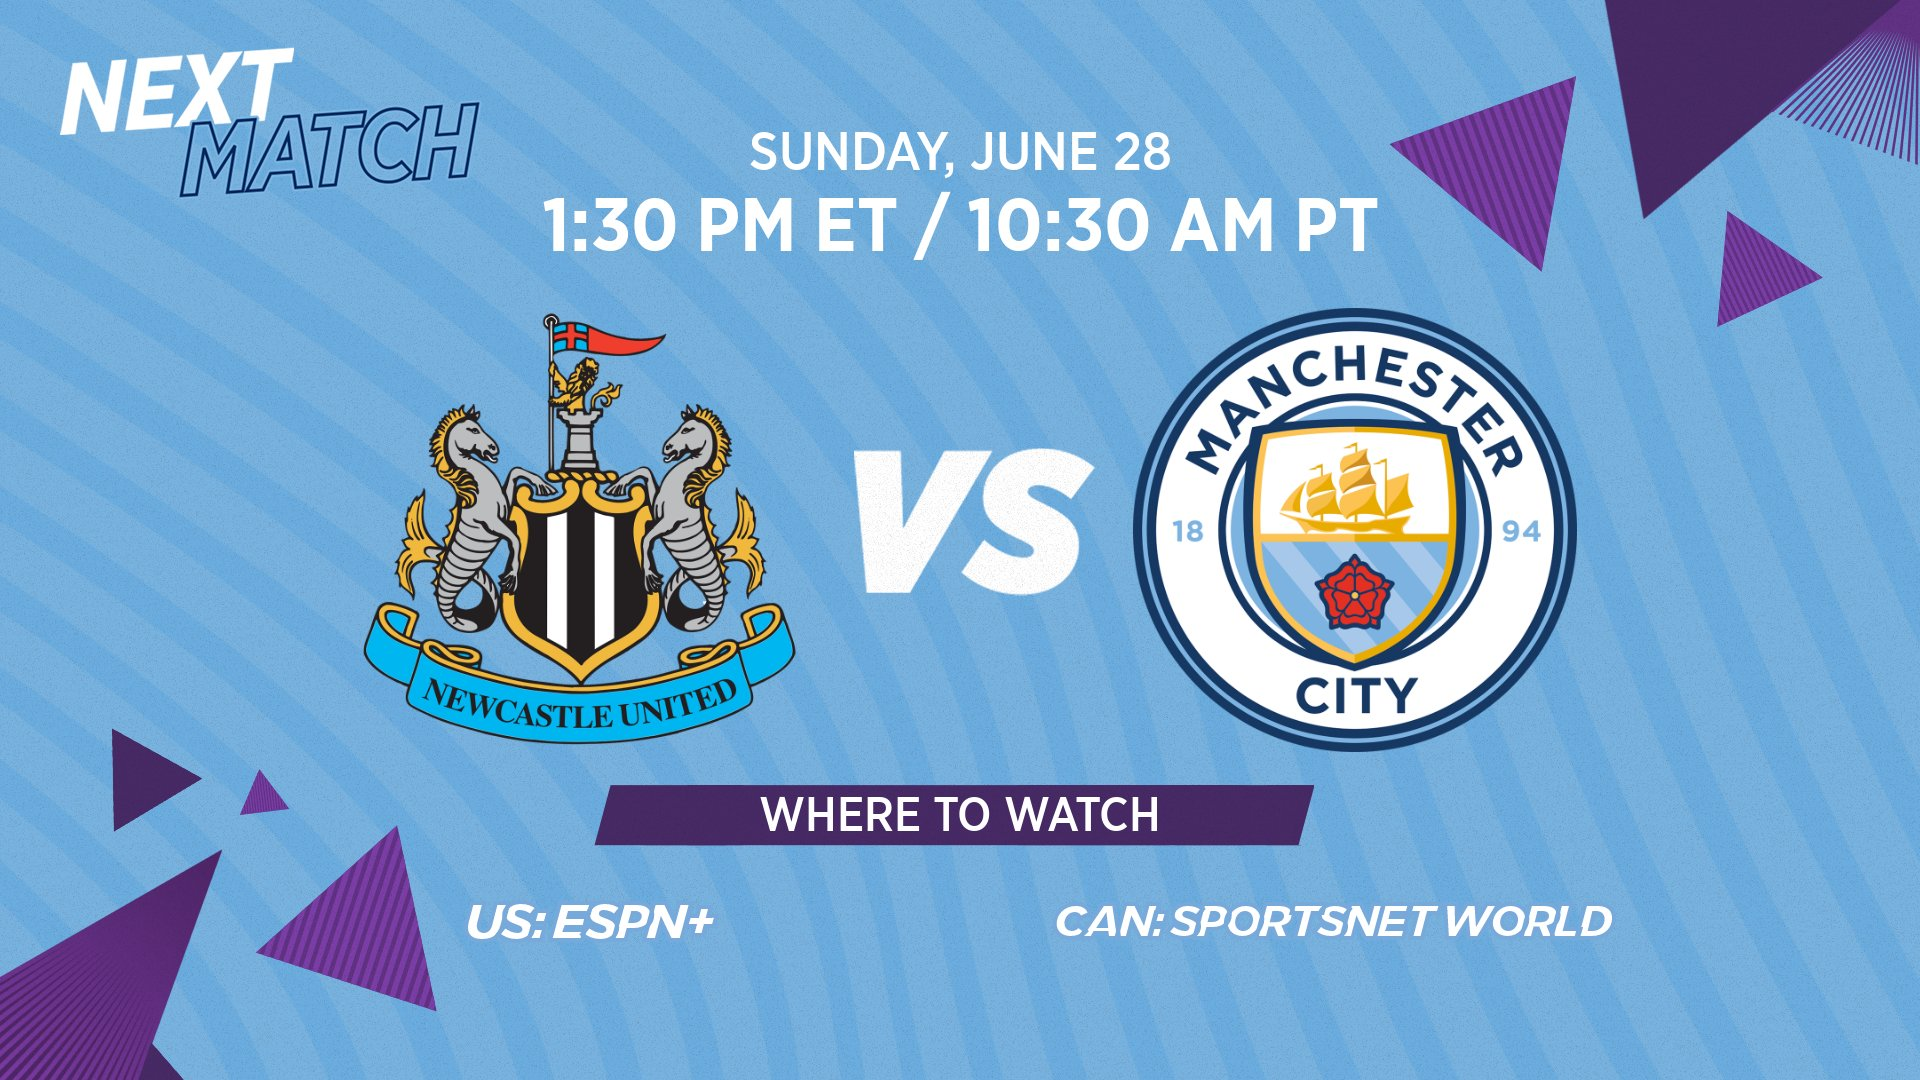 Manchester City Us On Twitter Here Are The Details For The Next Step In Our Facup Defense On Sunday Quarterfinals Time 1 30 Pm Et 10 30 Am Pt Espn